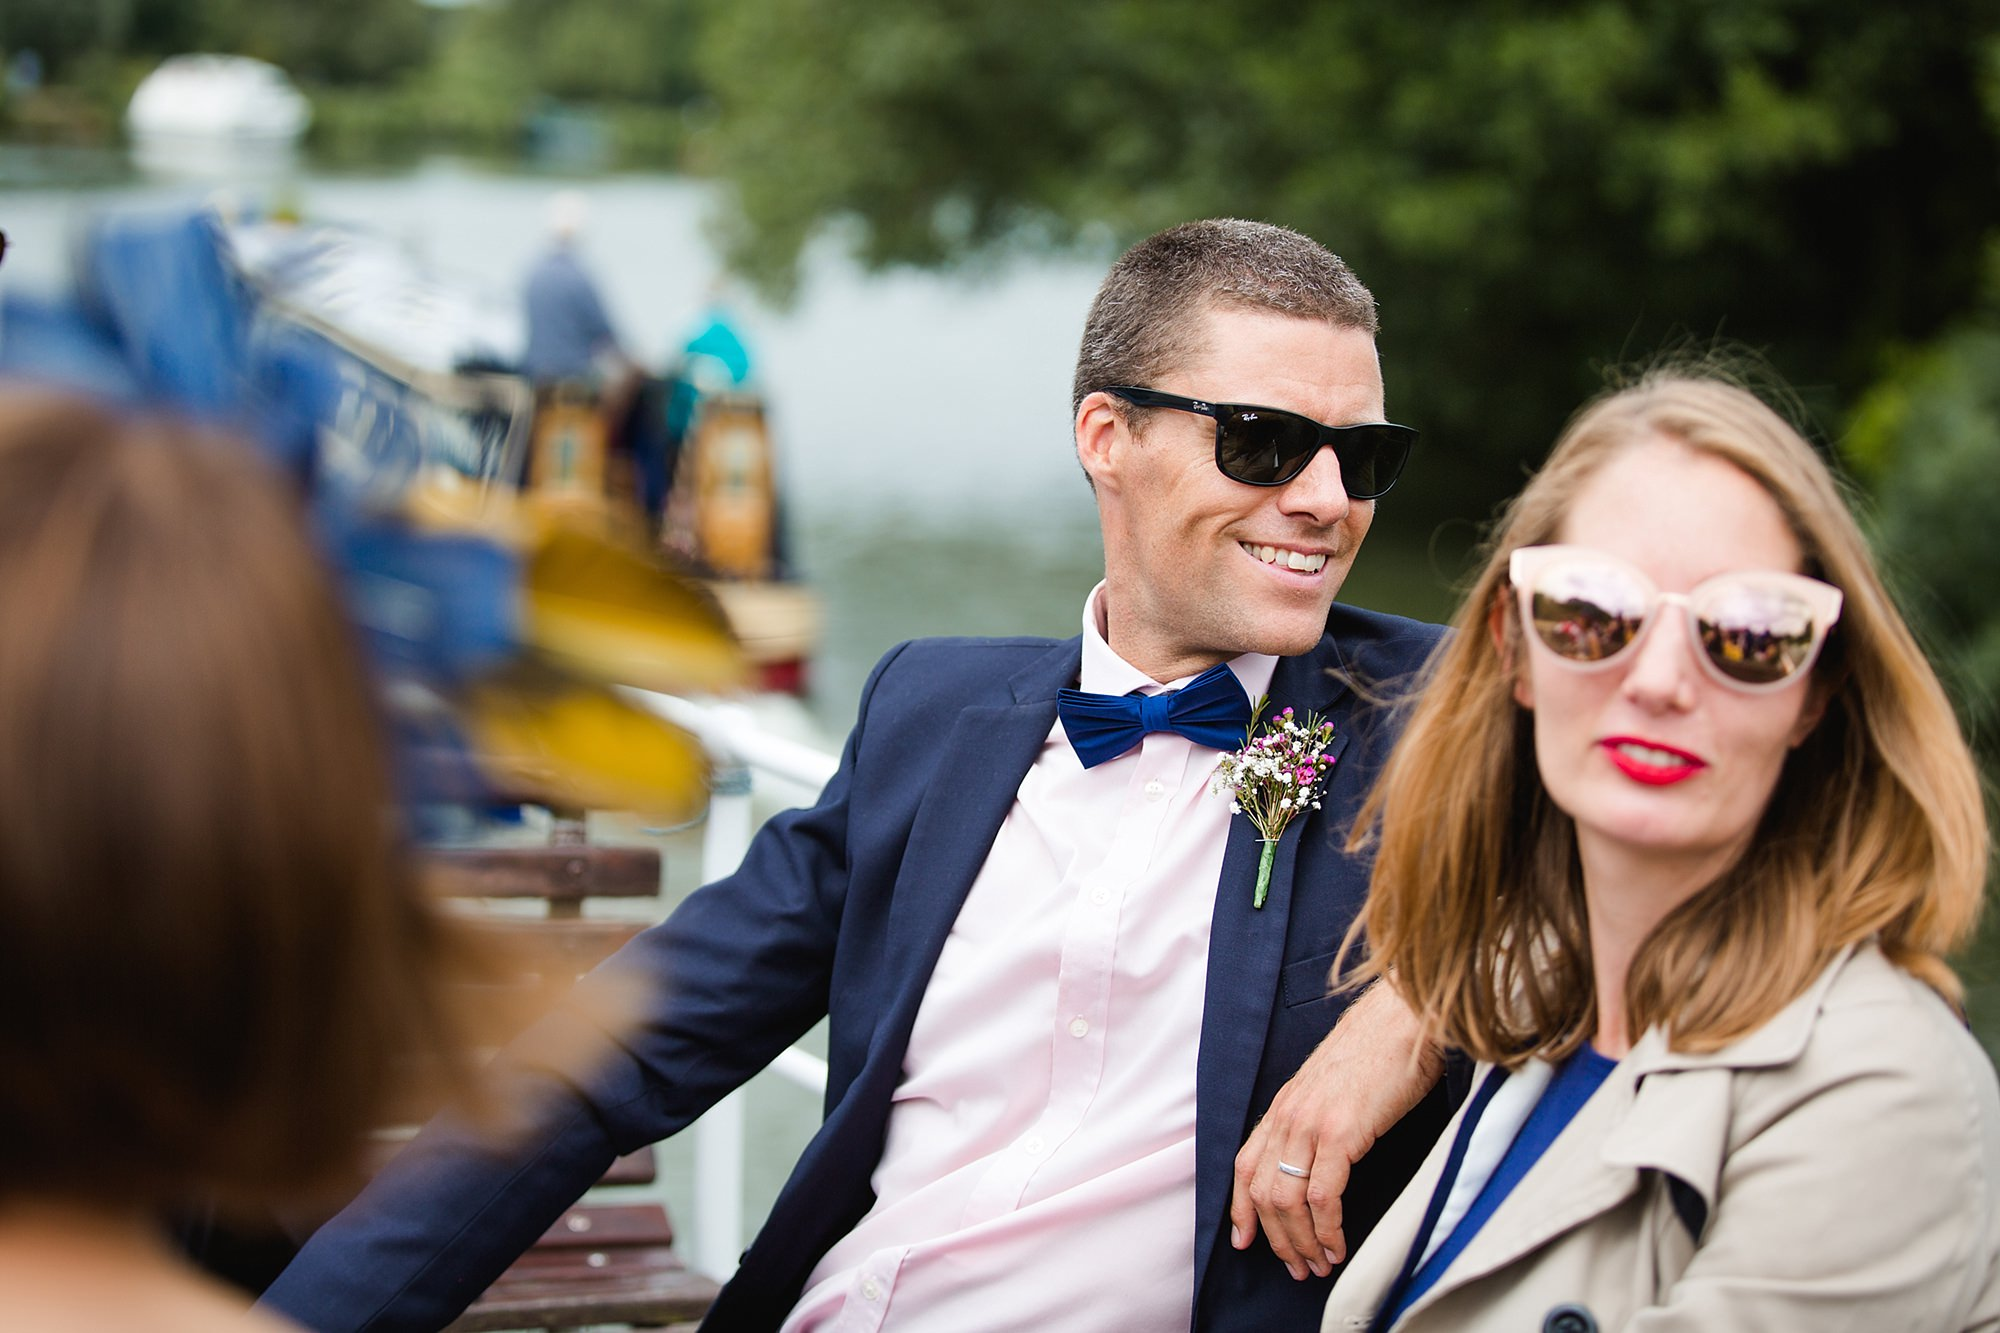 Isis Farmhouse Oxford Wedding guests during drinks reception on boat